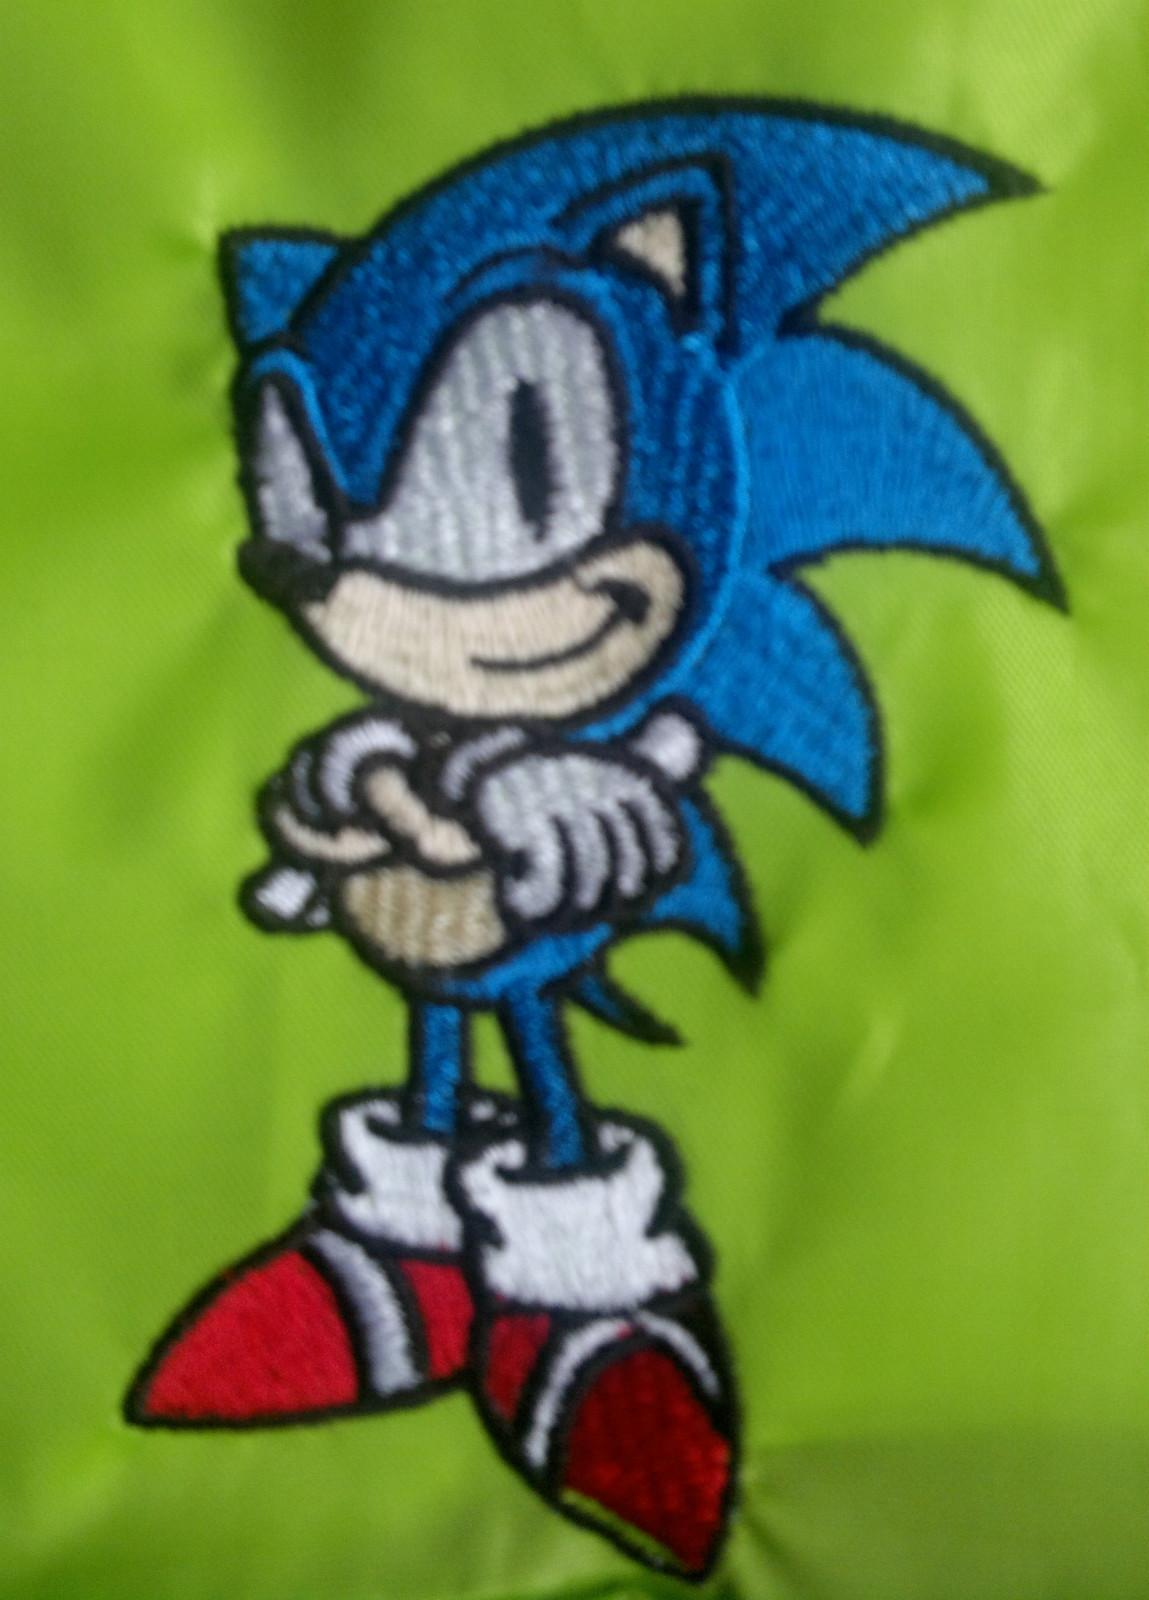 Sonic the Hedgehog embroidery design